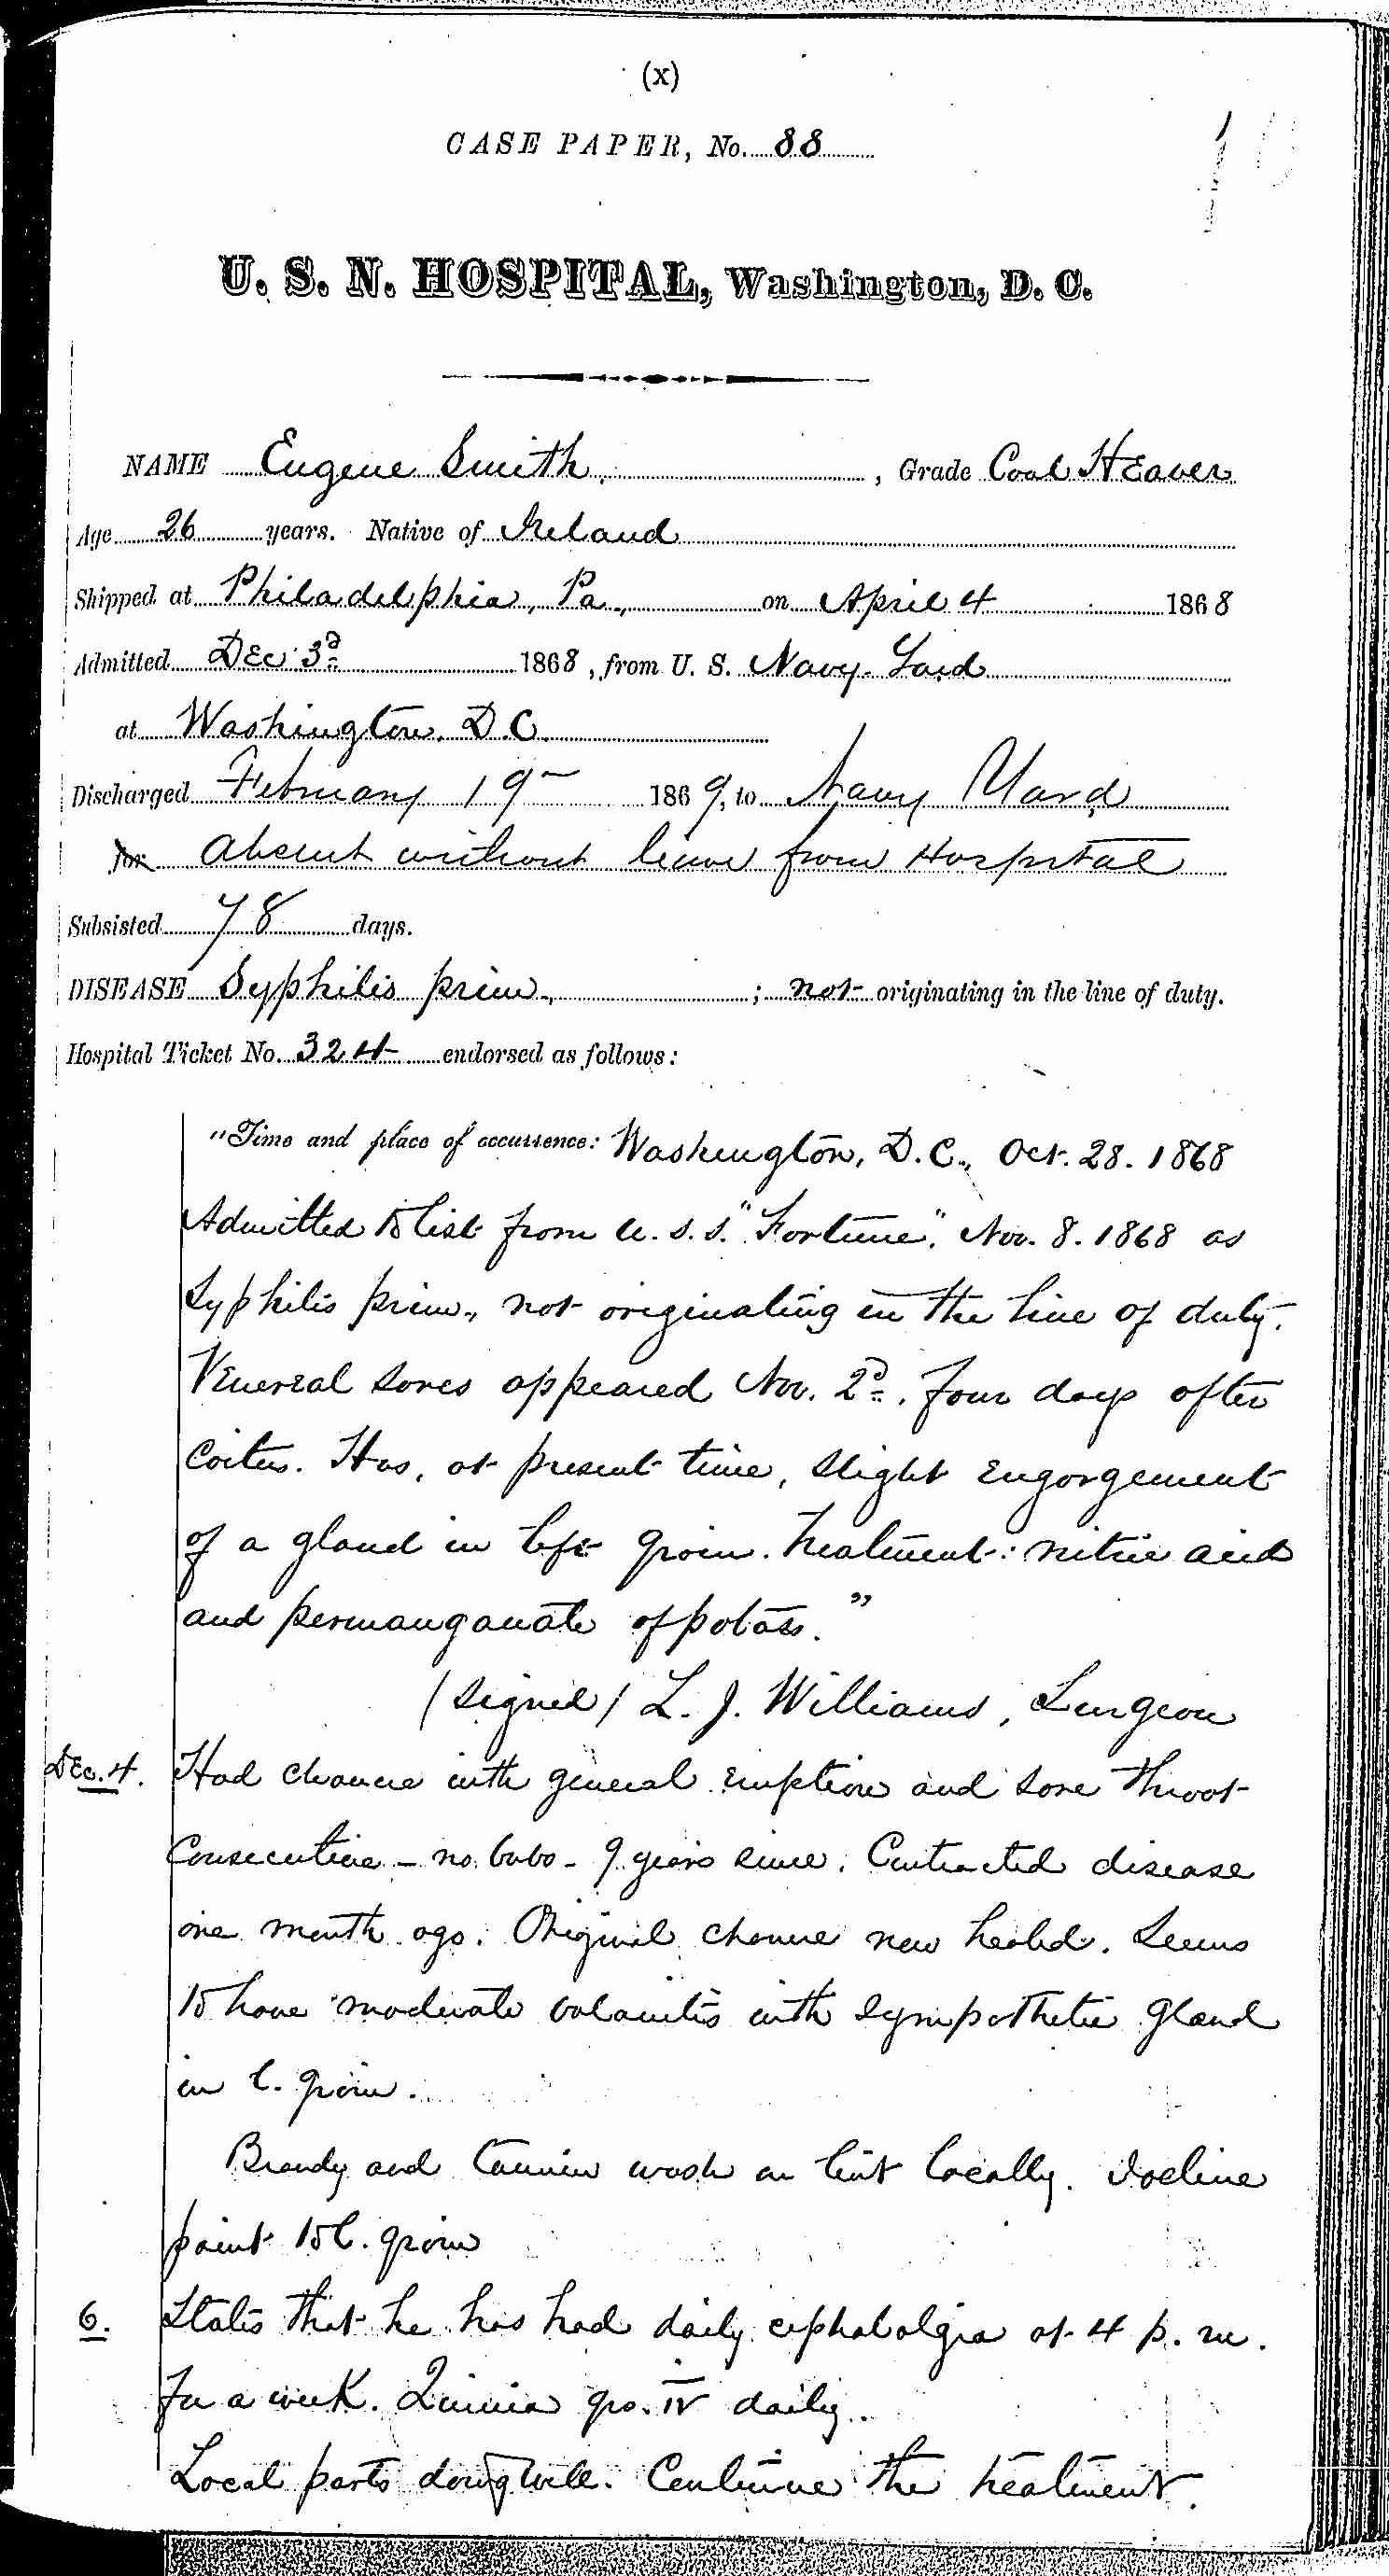 Entry for Eugene Smith (page 1 of 6) in the log Hospital Tickets and Case Papers - Naval Hospital - Washington, D.C. - 1868-69